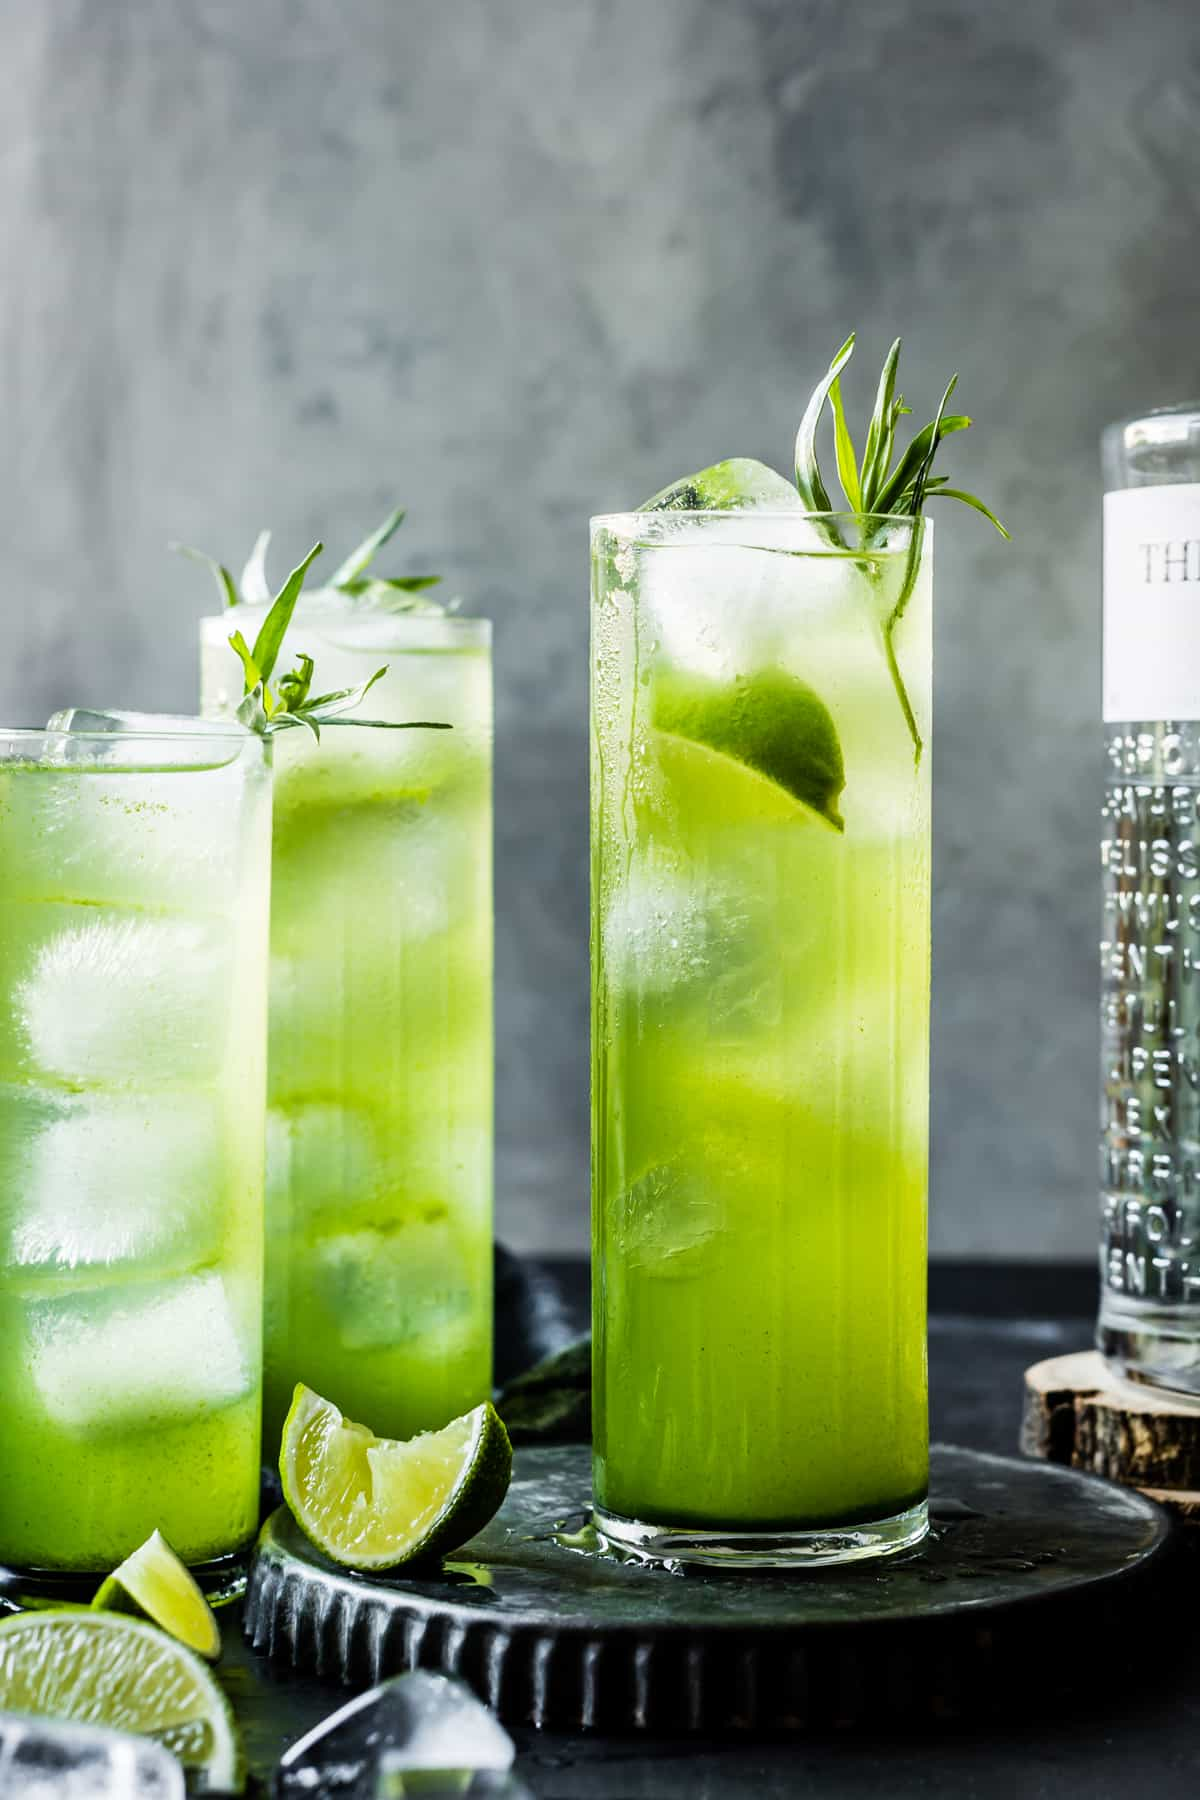 tall glasses of Tarragon Gin and Tonics